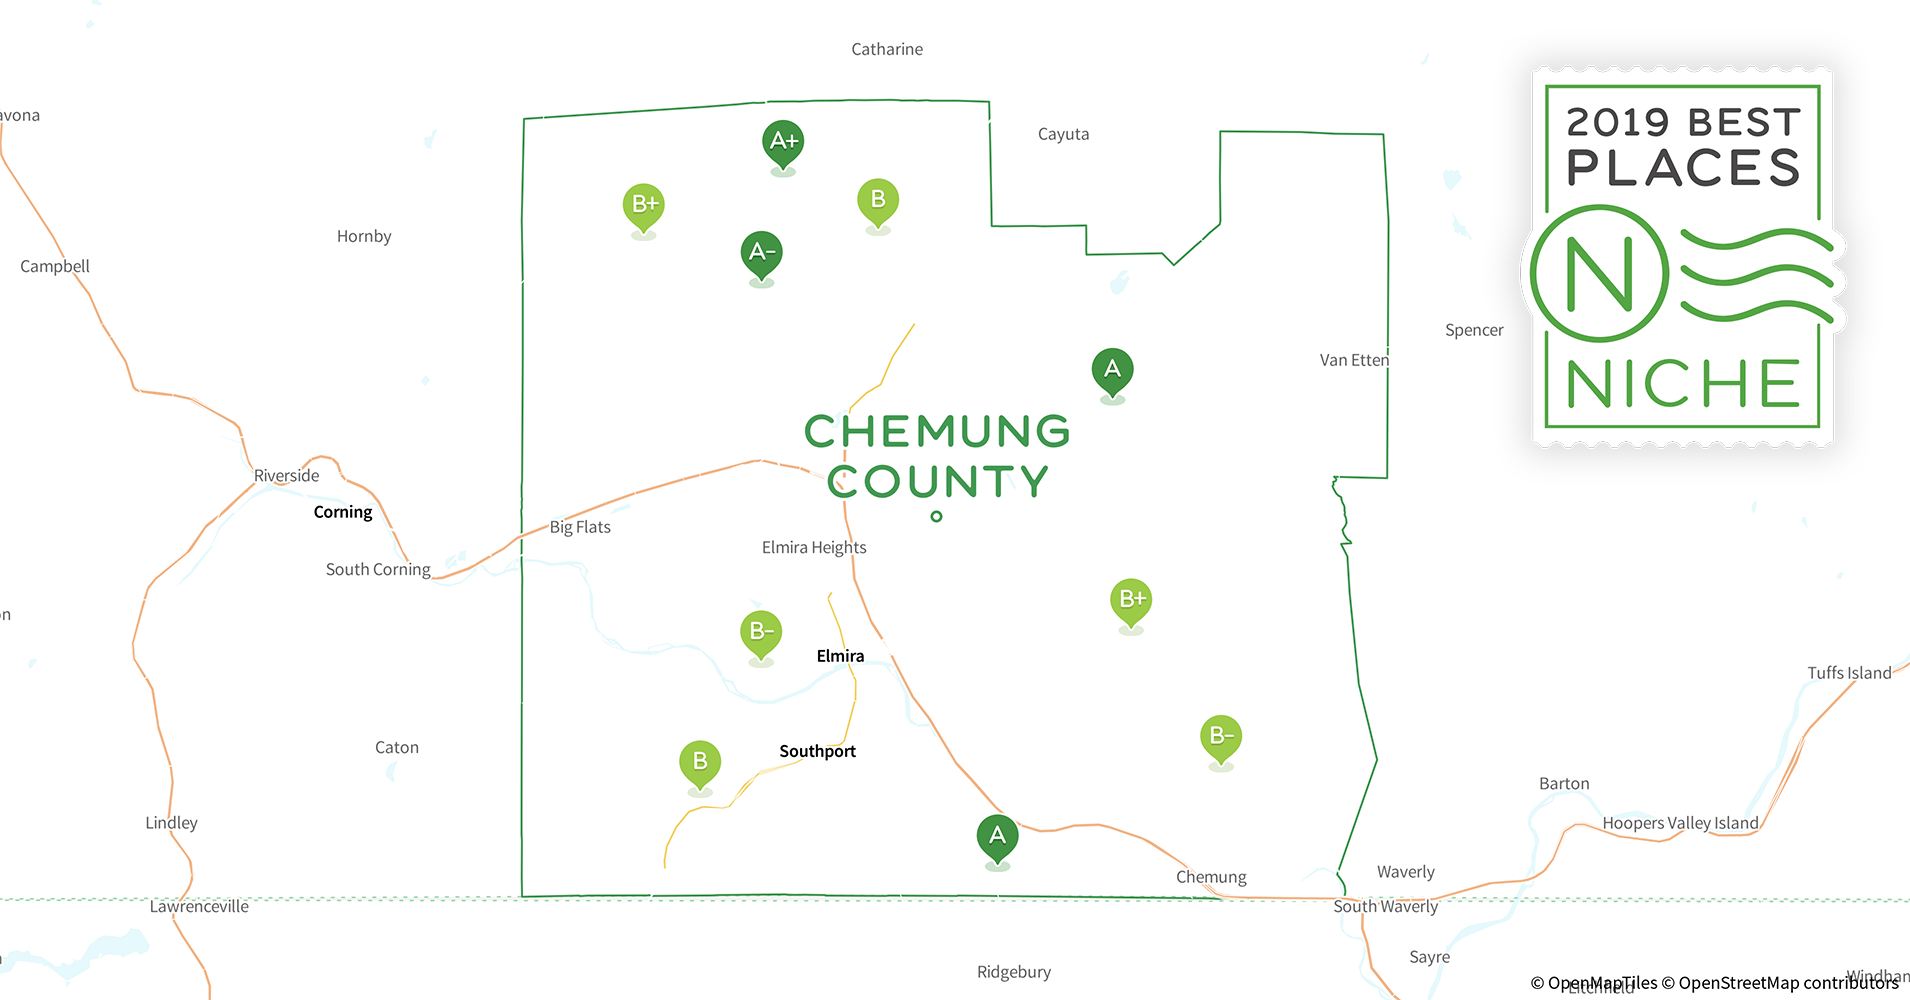 2019 Best Places to Live in Chemung County, NY - Niche Chemung County Tax Map on northumberland county tax map, ulster county tax map, mckean county tax map, kent county tax map, suffolk county tax map, broome county tax map, chemung ny, nassau county tax map, franklin county tax map, greene county tax map, marshall county tax map, potter county tax map, cortland county tax map, crawford county tax map, chenango county tax map, clarion county tax map, milam county tax map, richmond county tax map, caldwell county tax map, steuben county tax map,